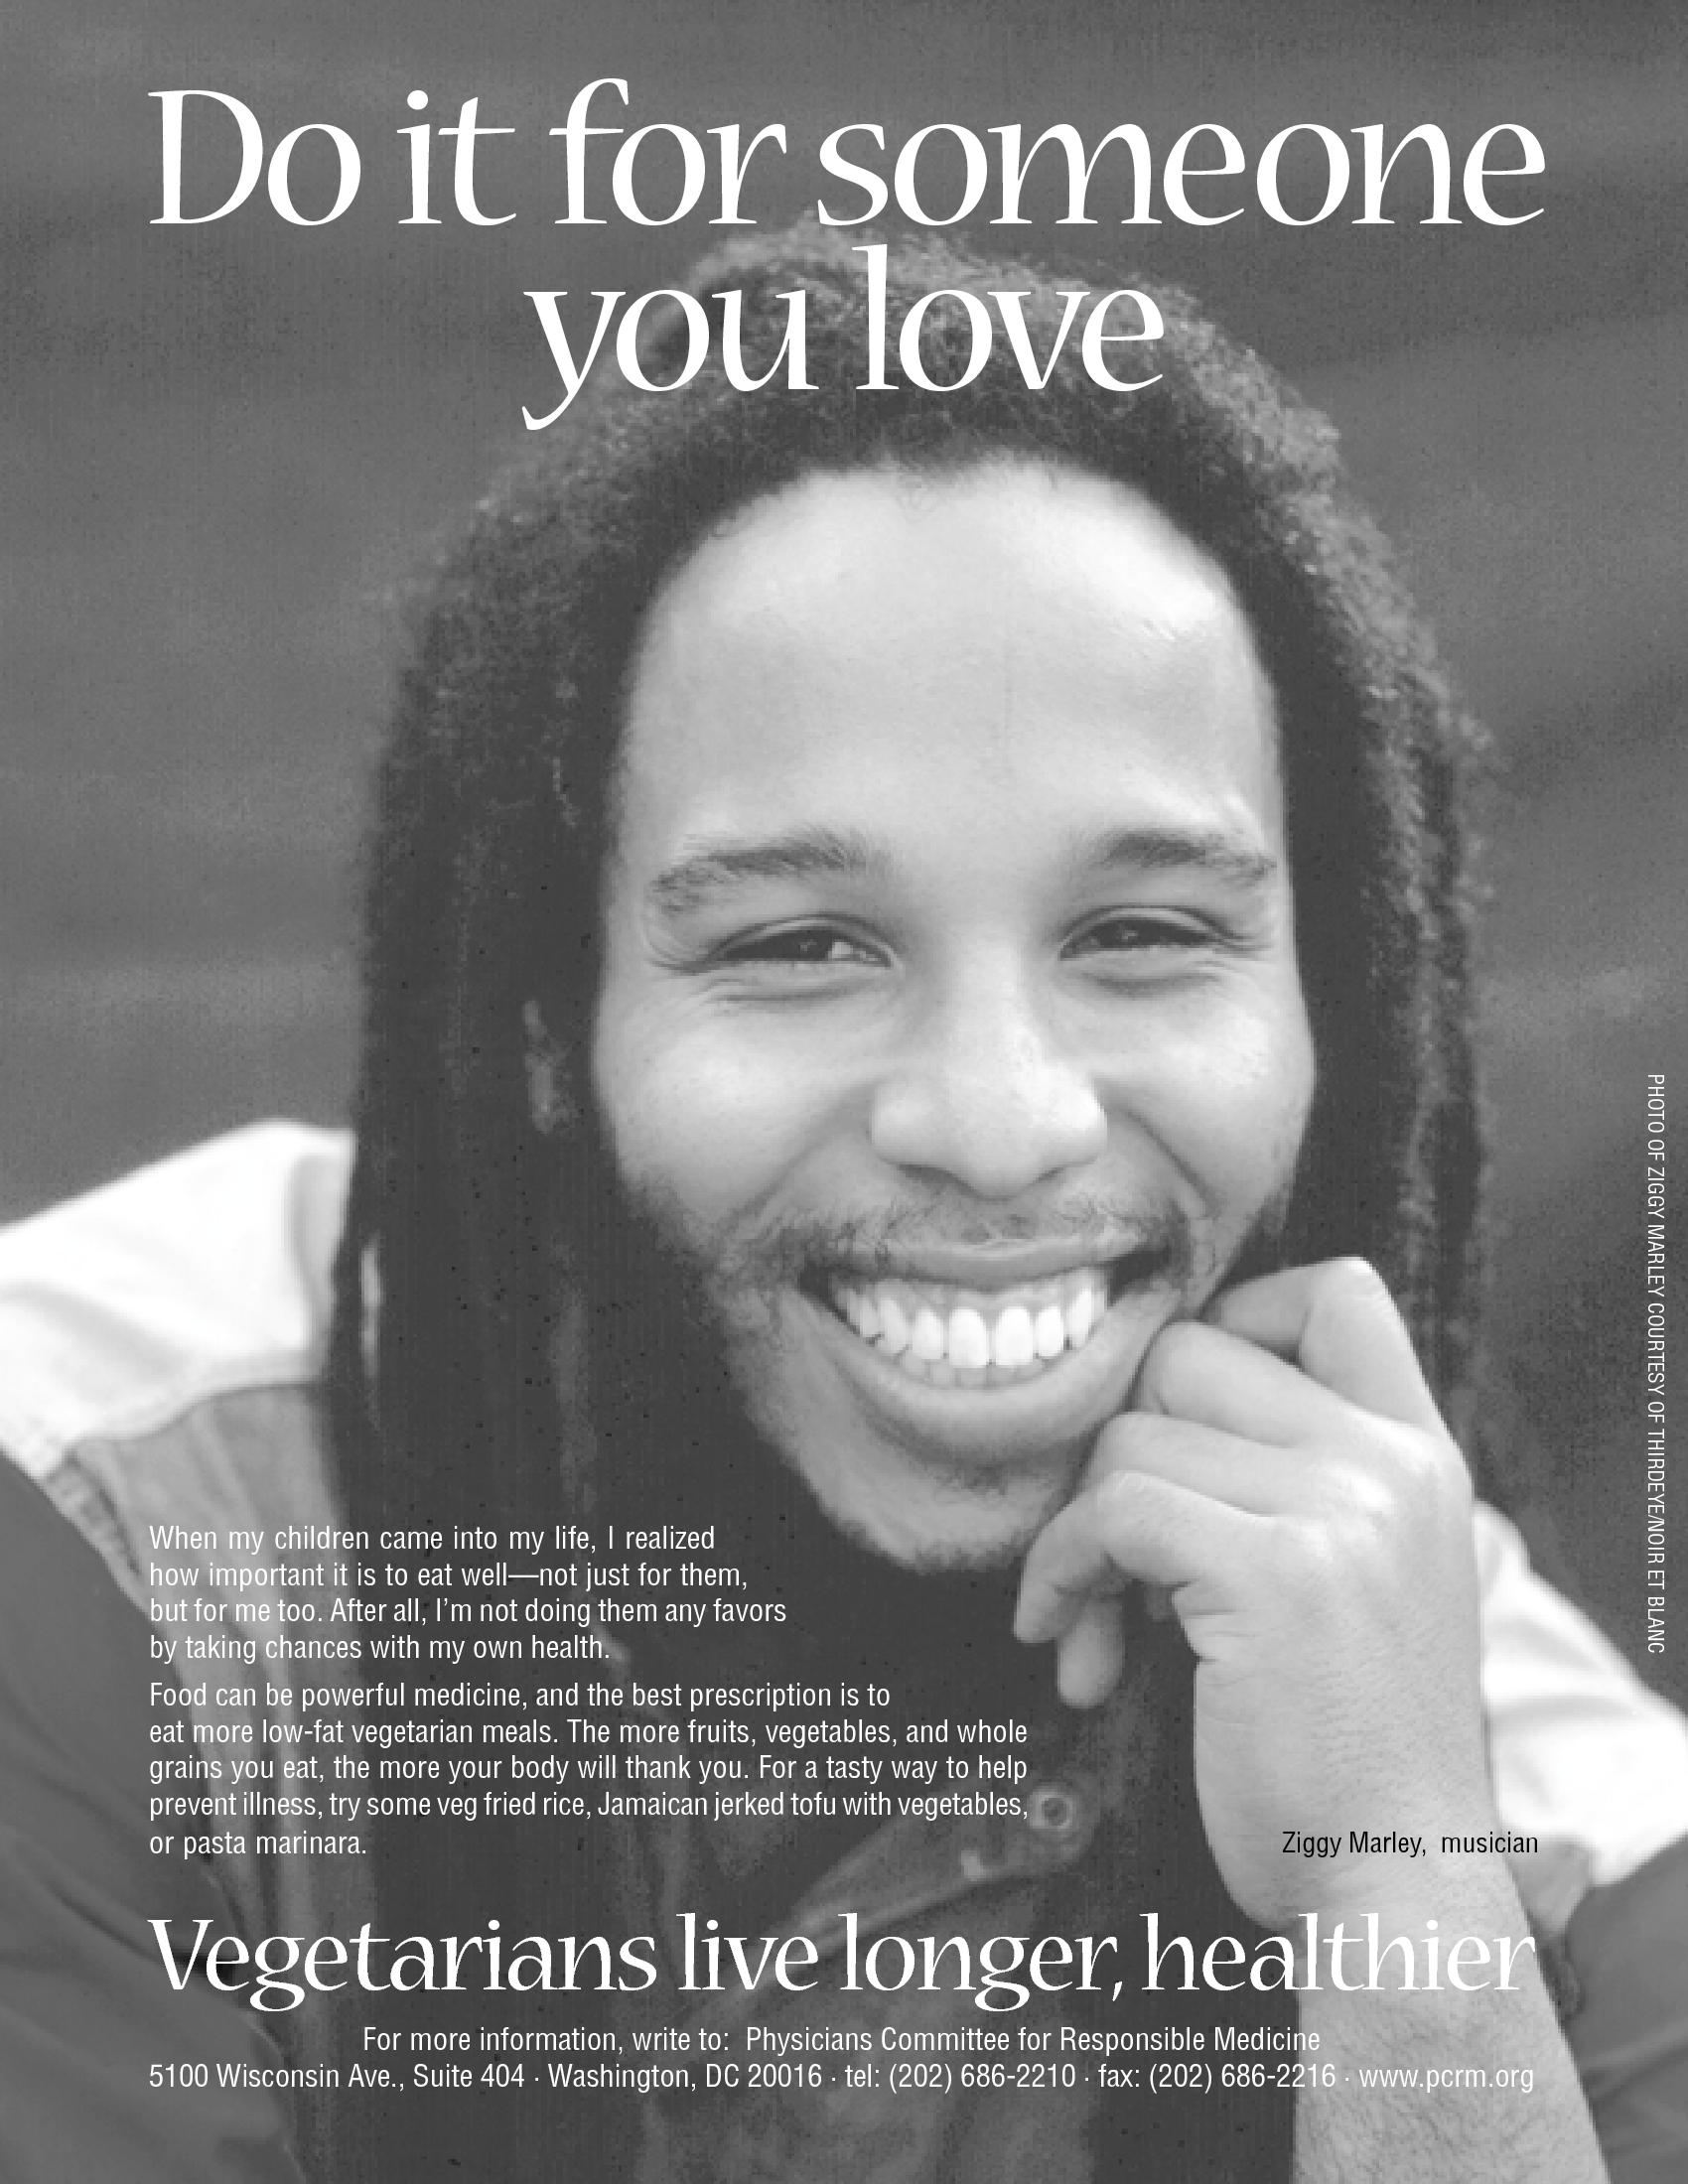 Ziggy Marley's quote #3